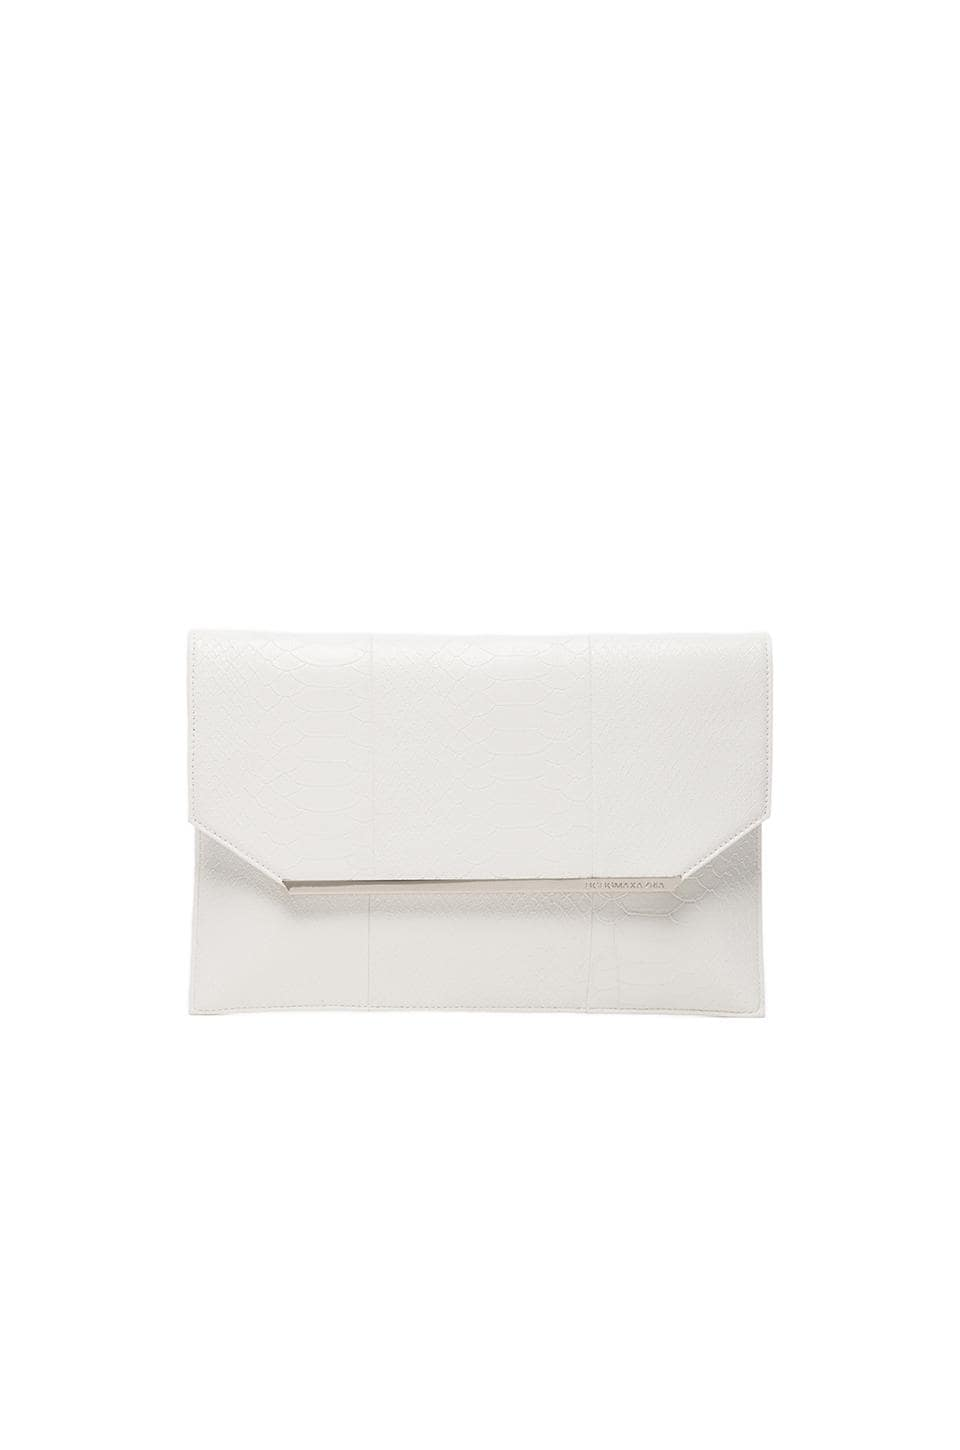 BCBGMAXAZRIA New Snake Envelope Clutch in White